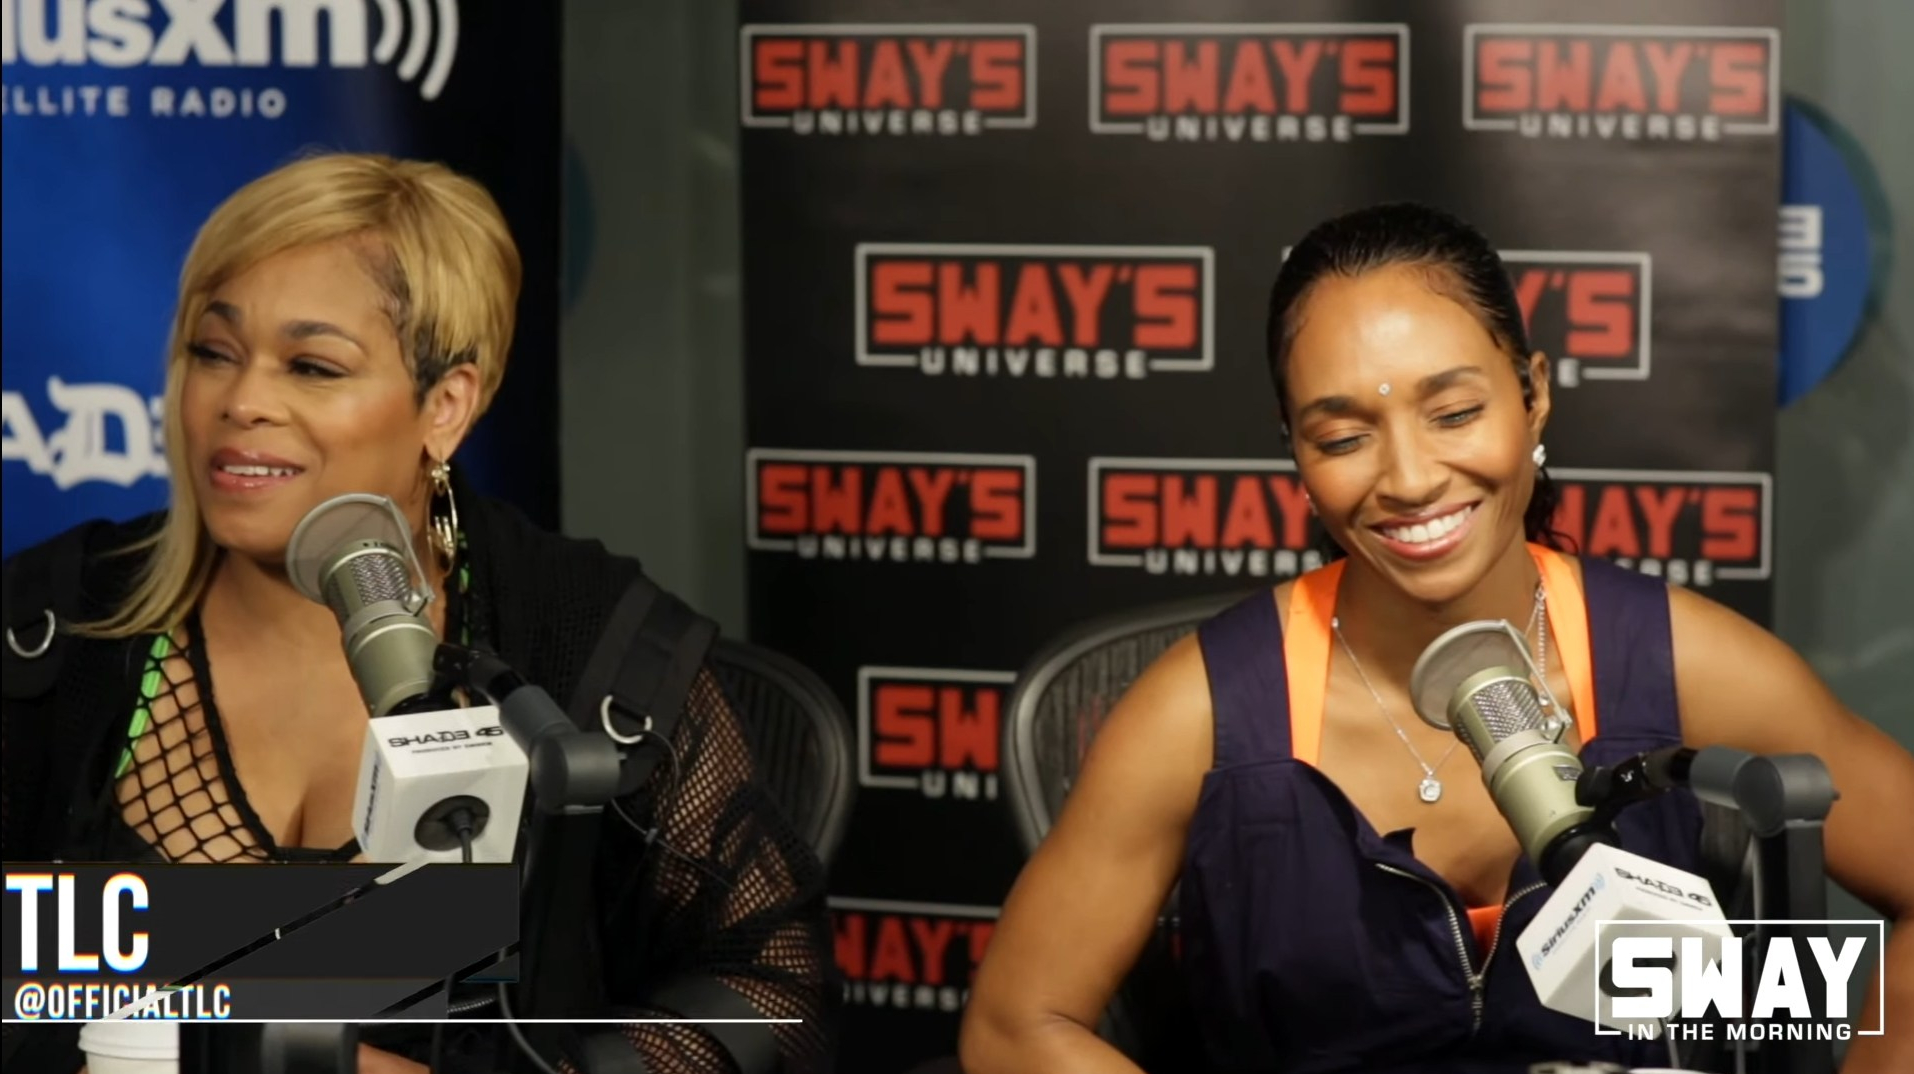 TLC On Second Diamond Award, Owning Their Masters and Being Sexy On Tour